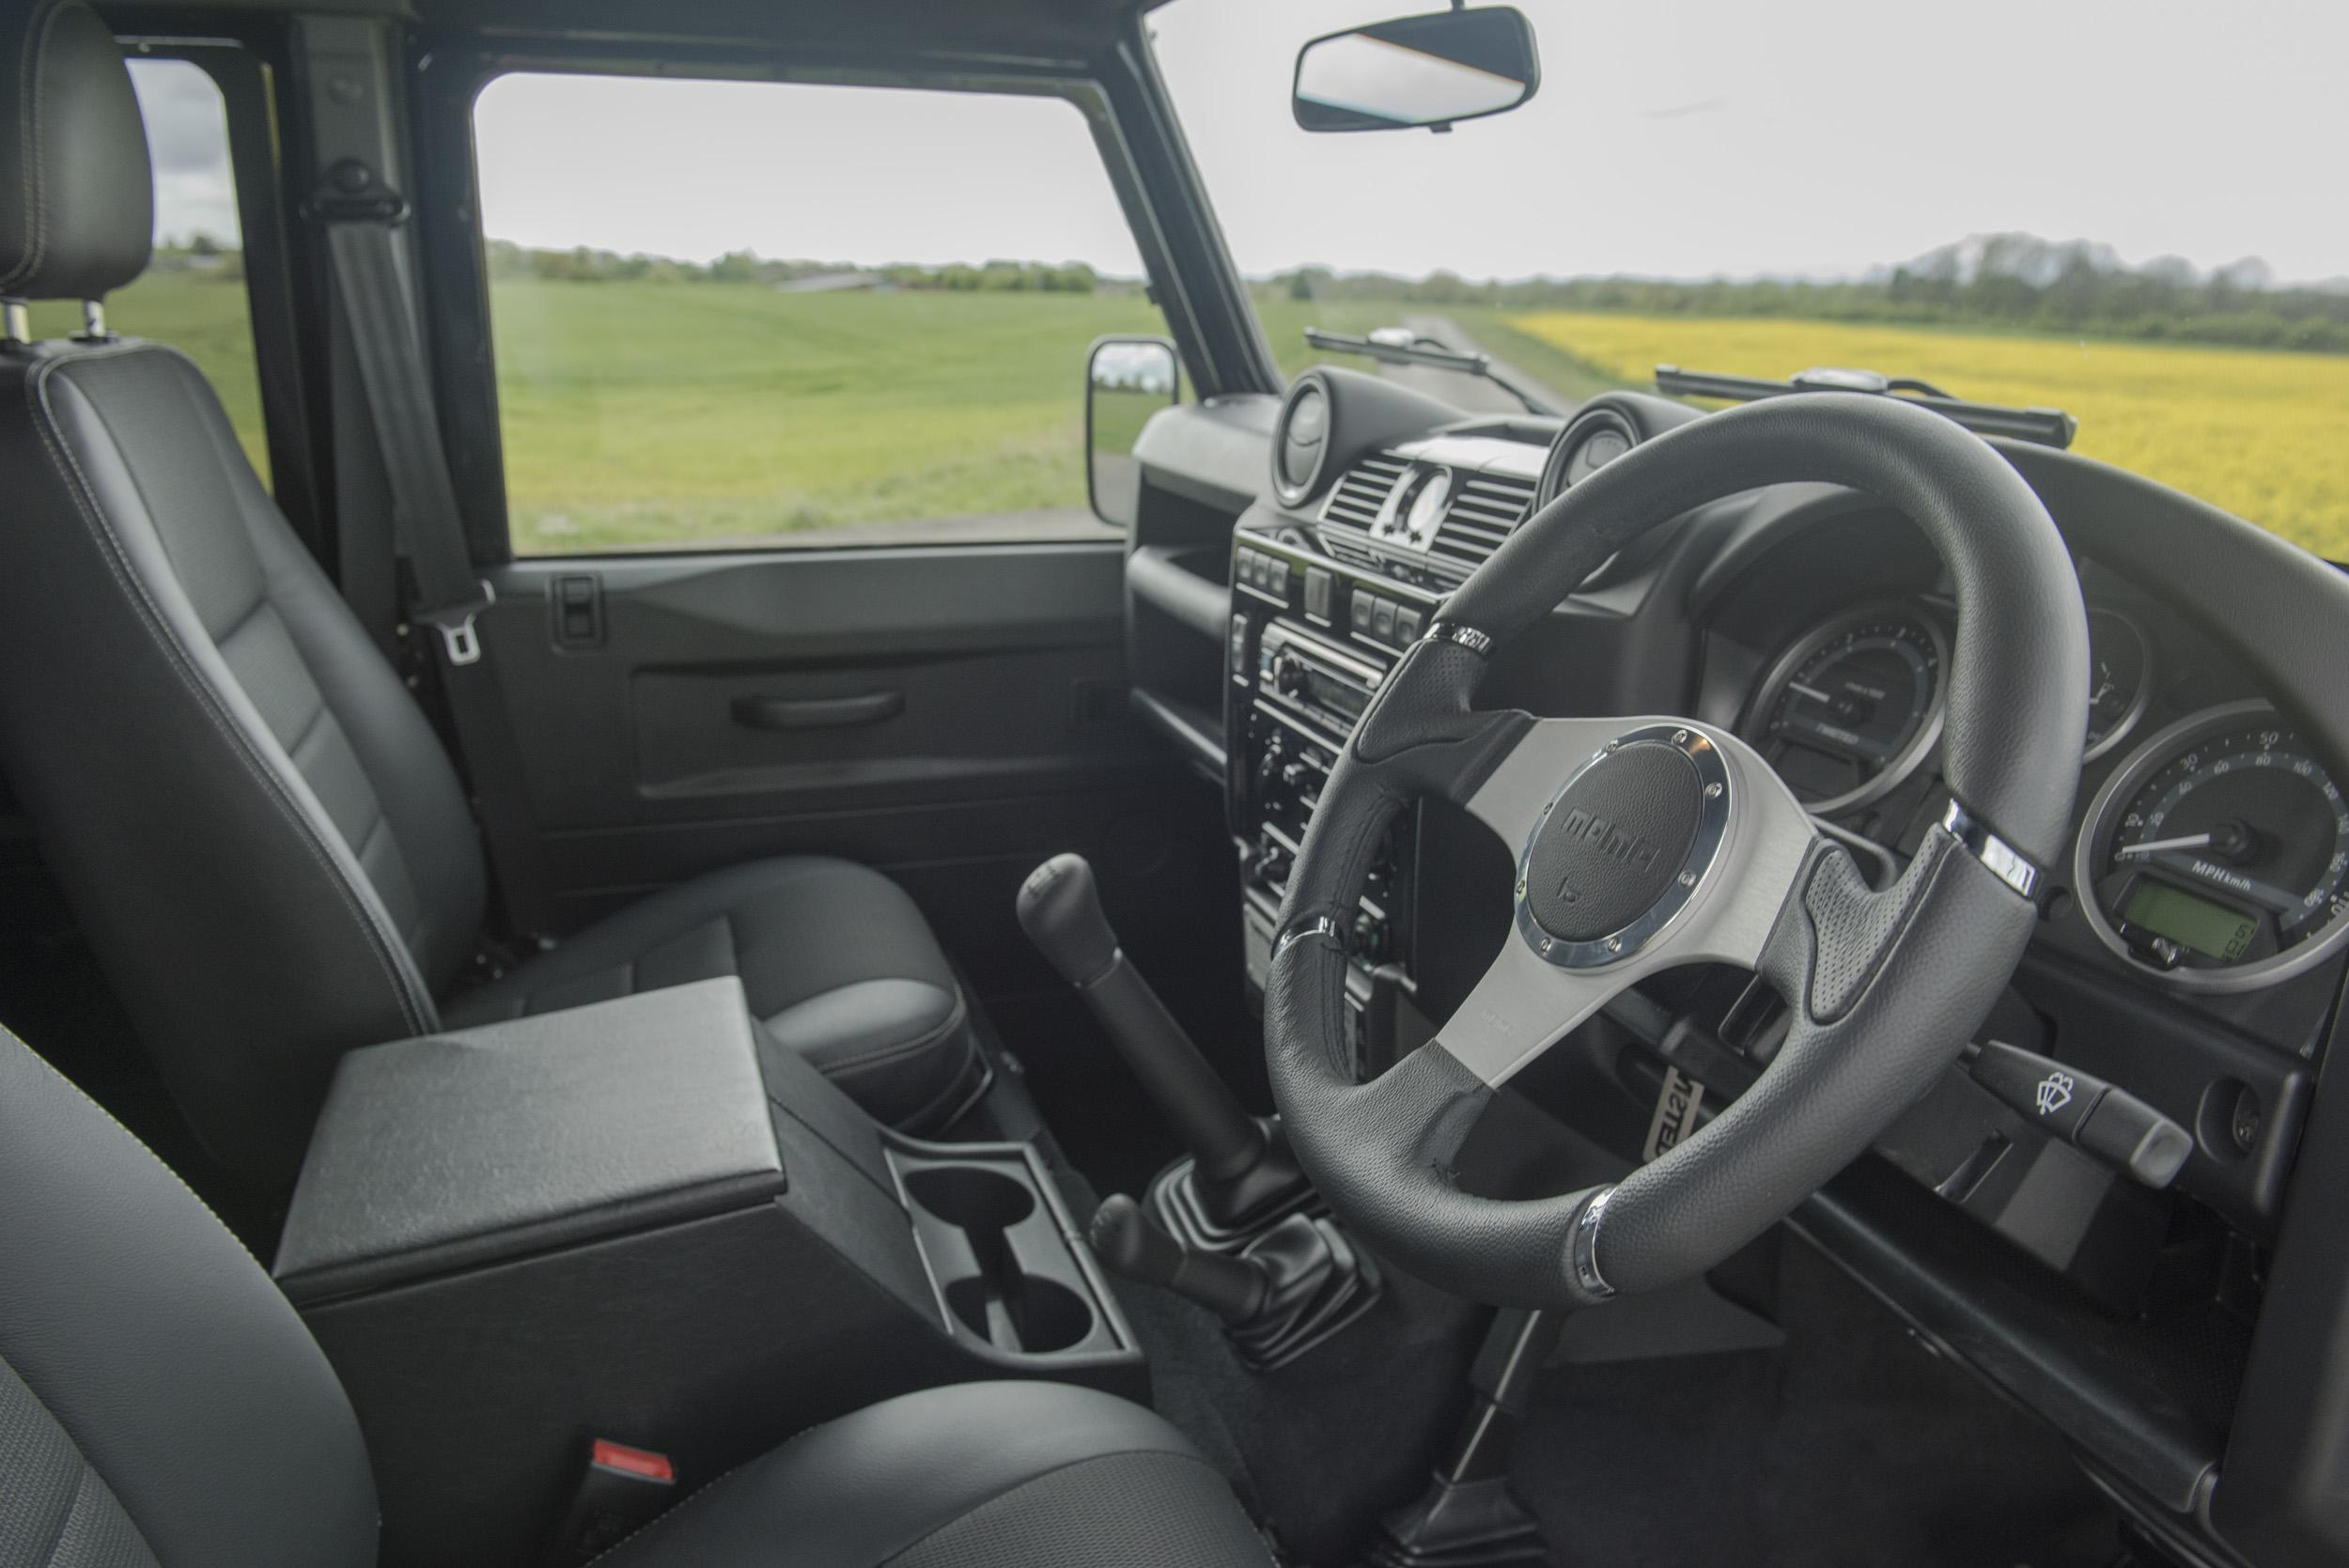 Car Review Twisted Land Rover Defender 110 Utility The Independent 4 6 Engine Get